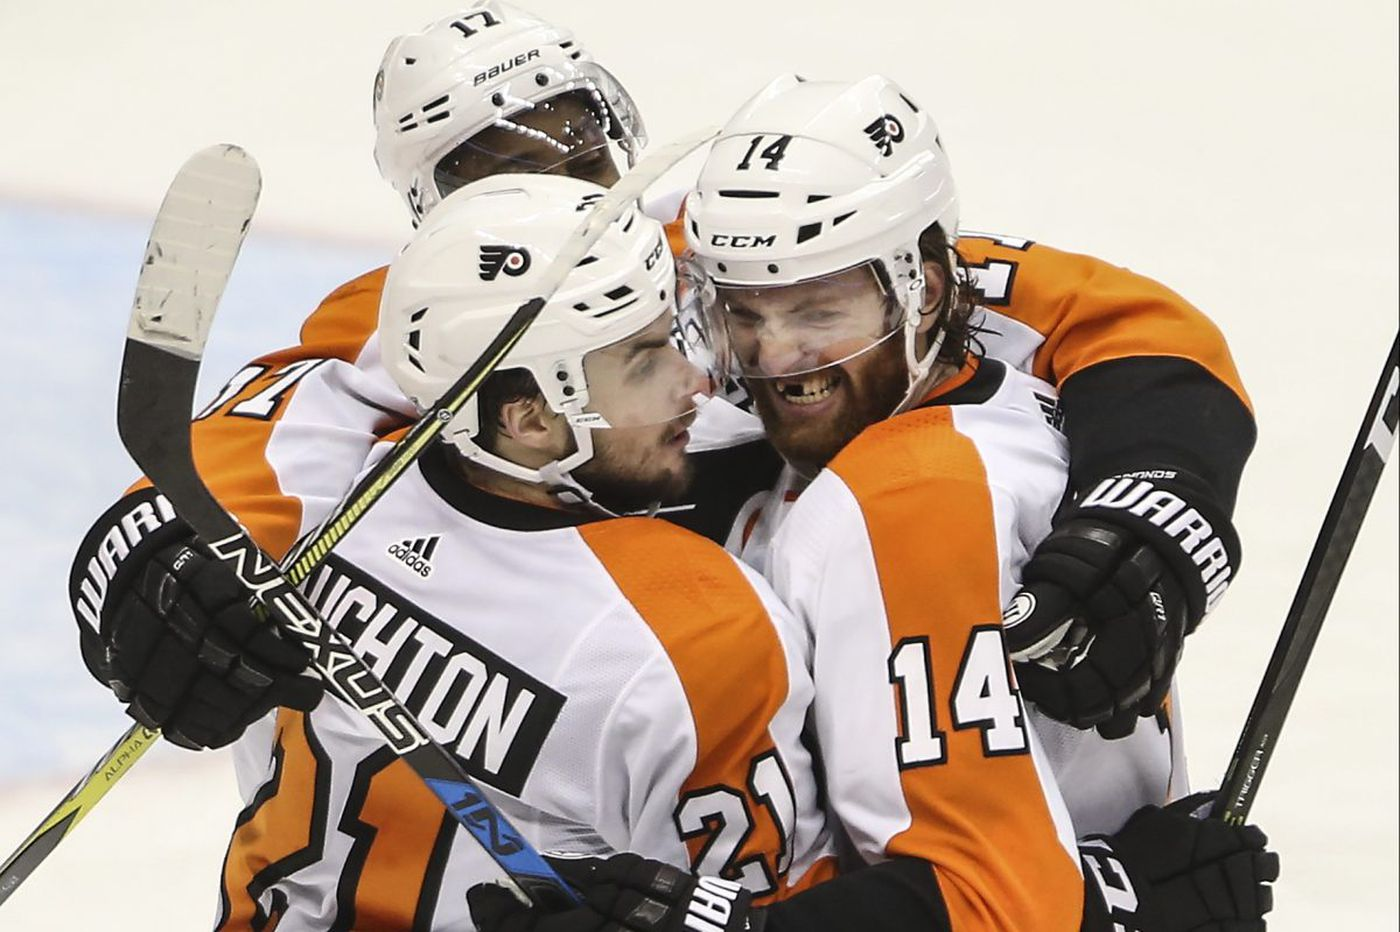 Sean Couturier's late goal gives Flyers stunning win over Penguins, keeps series alive